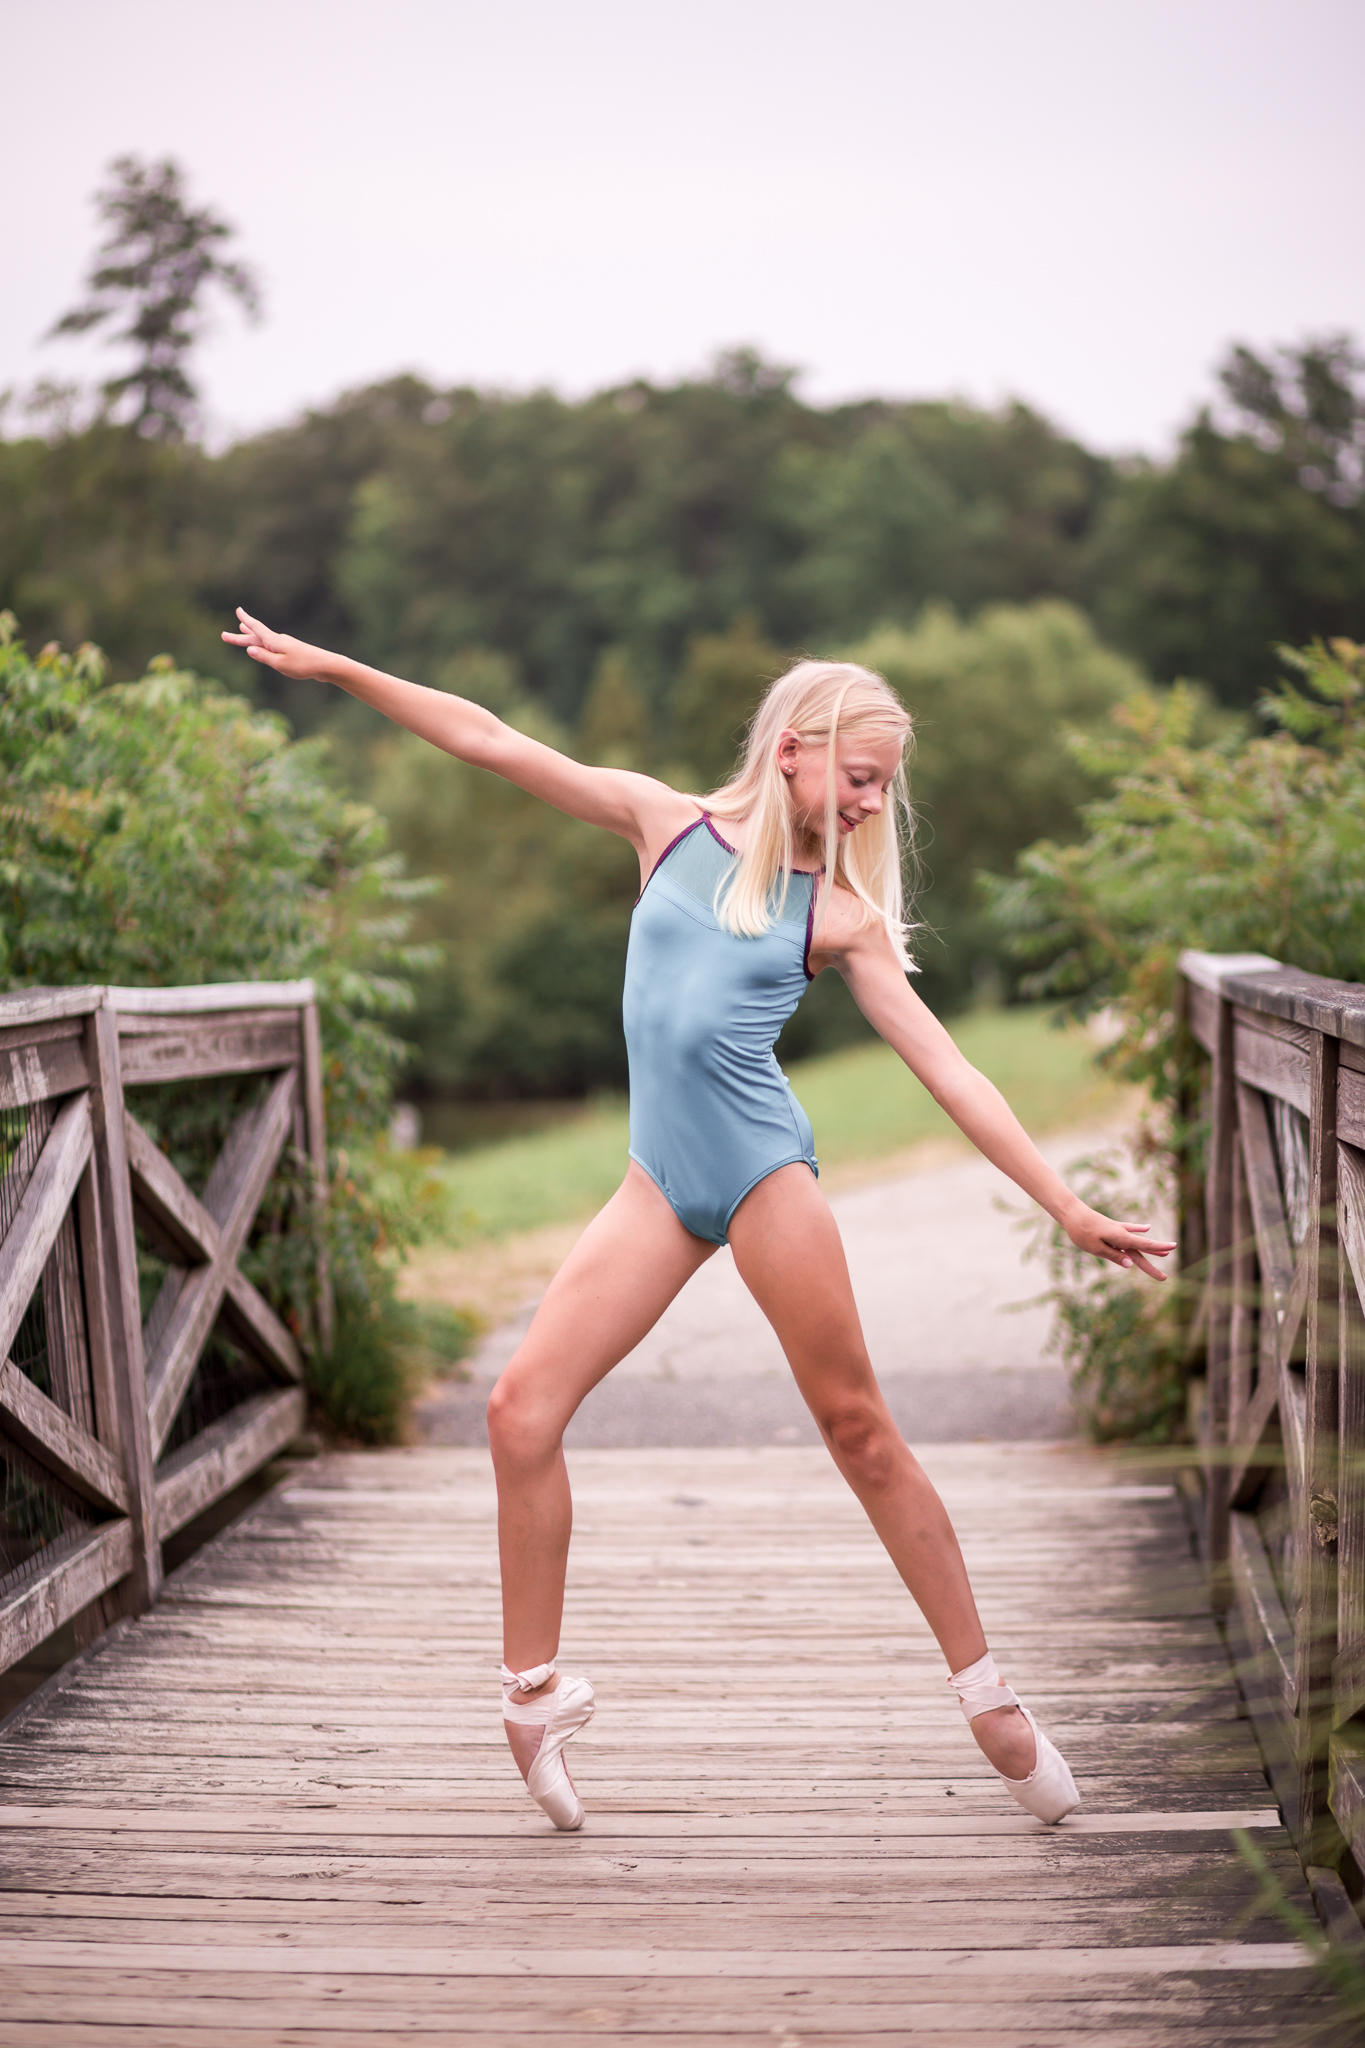 Midlothian Virginia Dance Photo Session